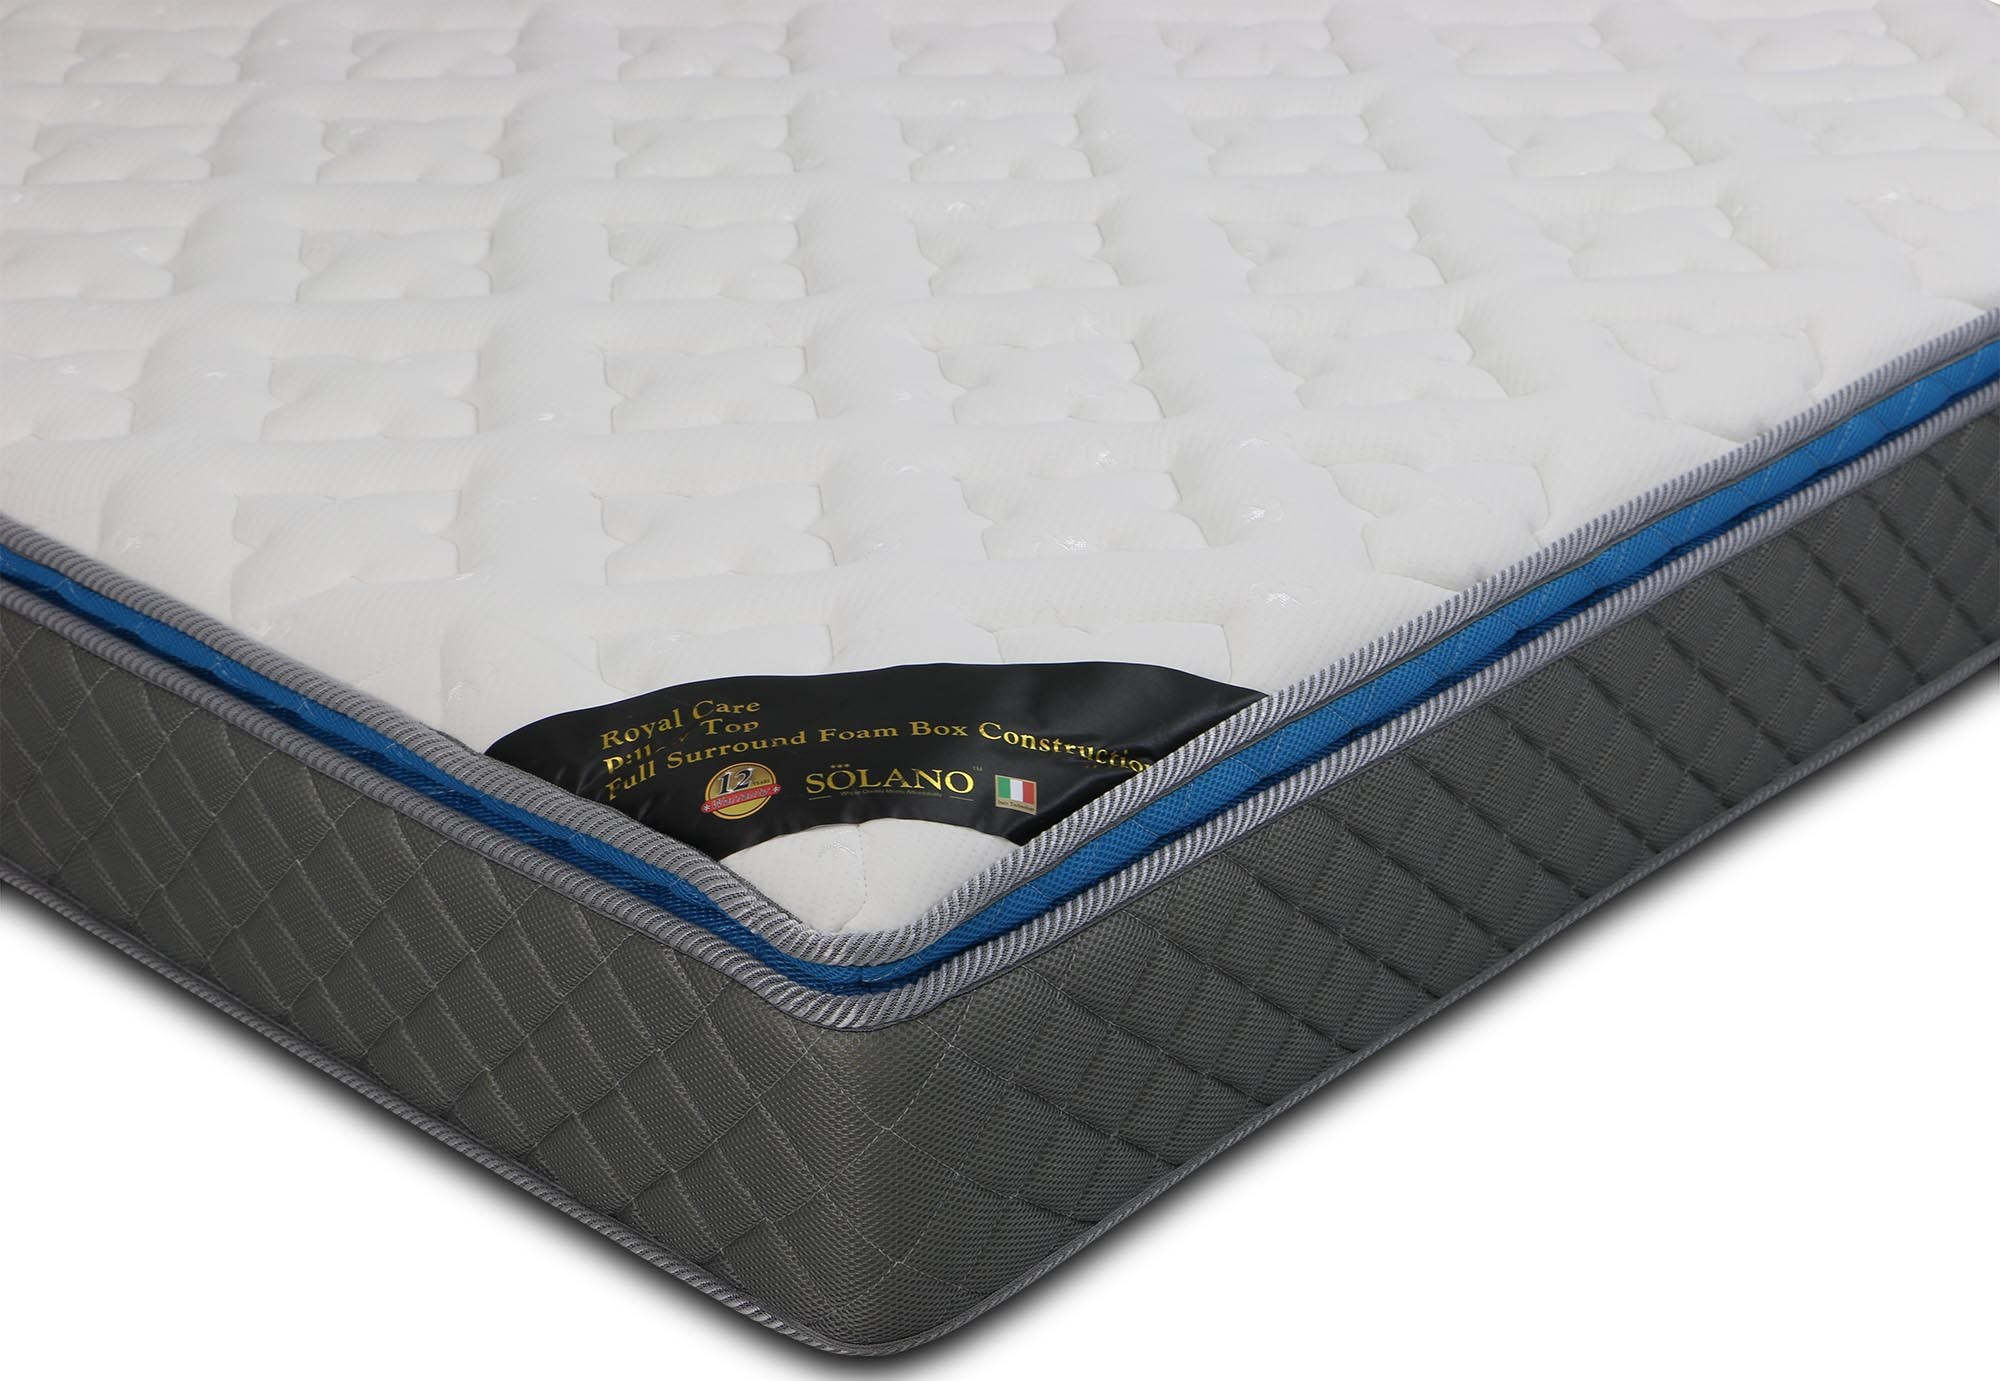 Mattresses Mattress Warehouse Clearance Outlet Solano Caruso Latex With Pocketed Spring King Size ...